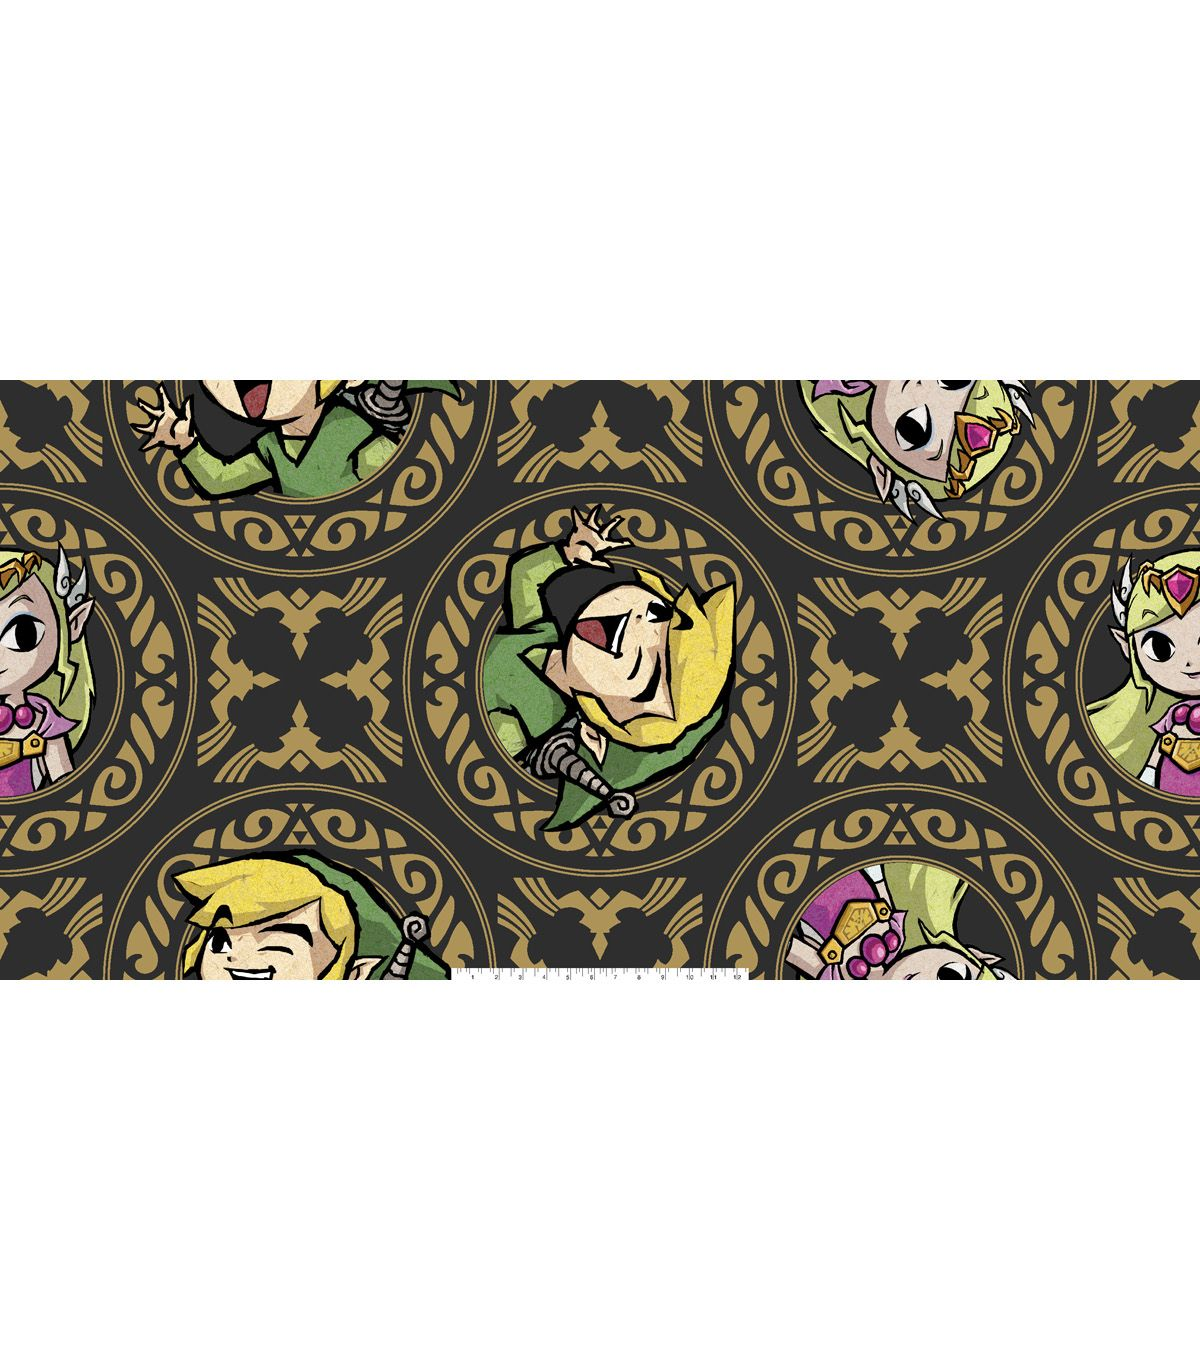 Nintendo zelda fleece fabric